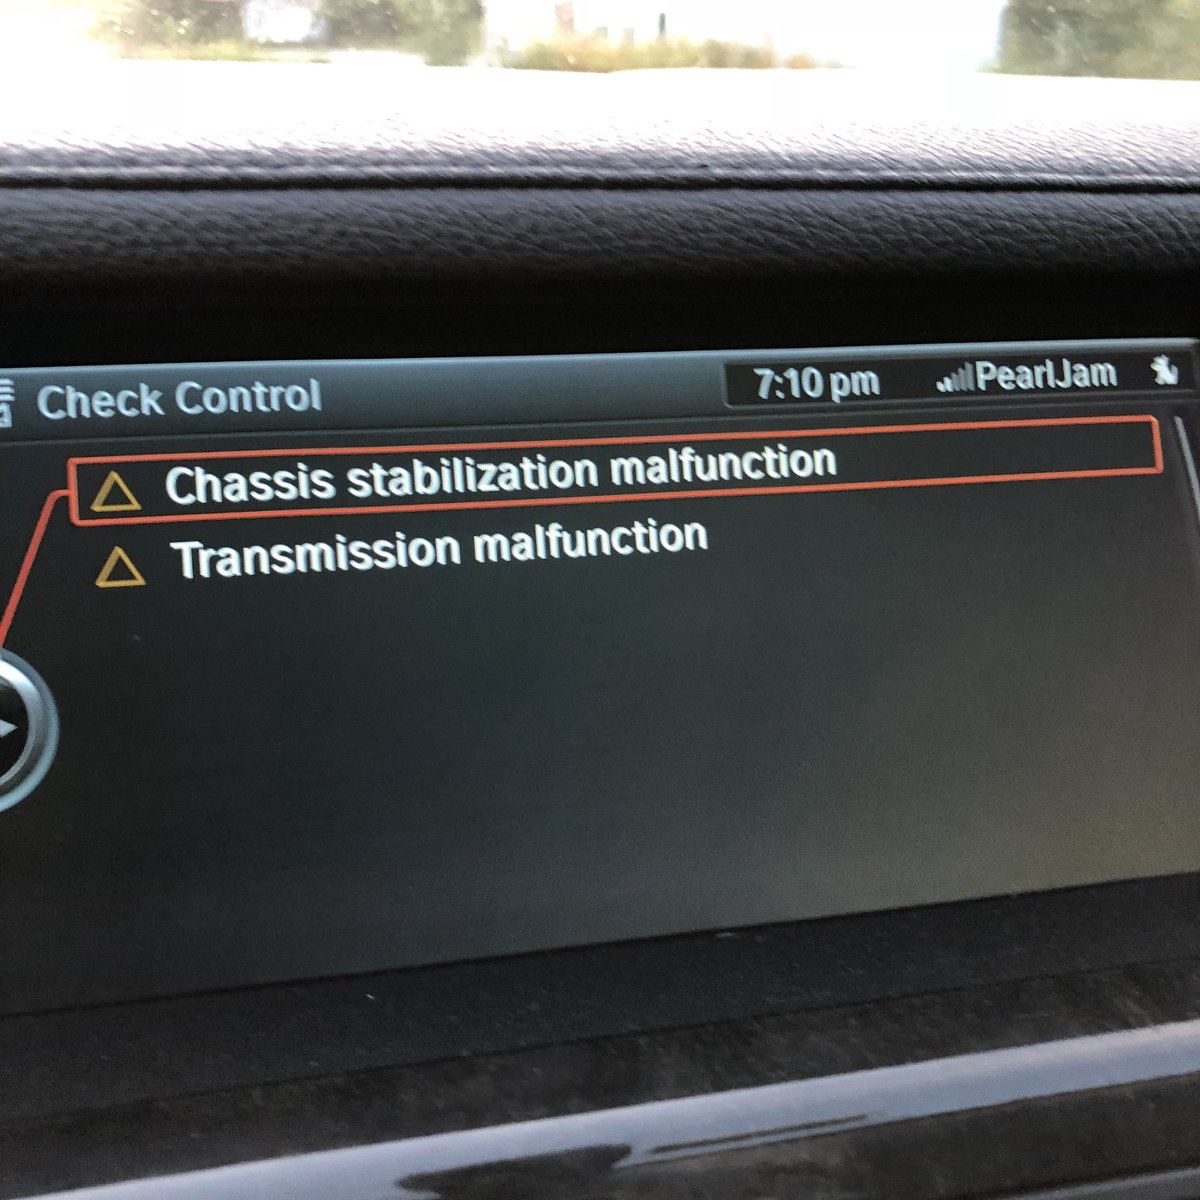 Bmw On Twitter We Re Sorry To Hear Of Your Frustration As It Is Difficult To Assess These Problems From A Distance It Would Be Best To Contact Your Bmw Dealer Directly They